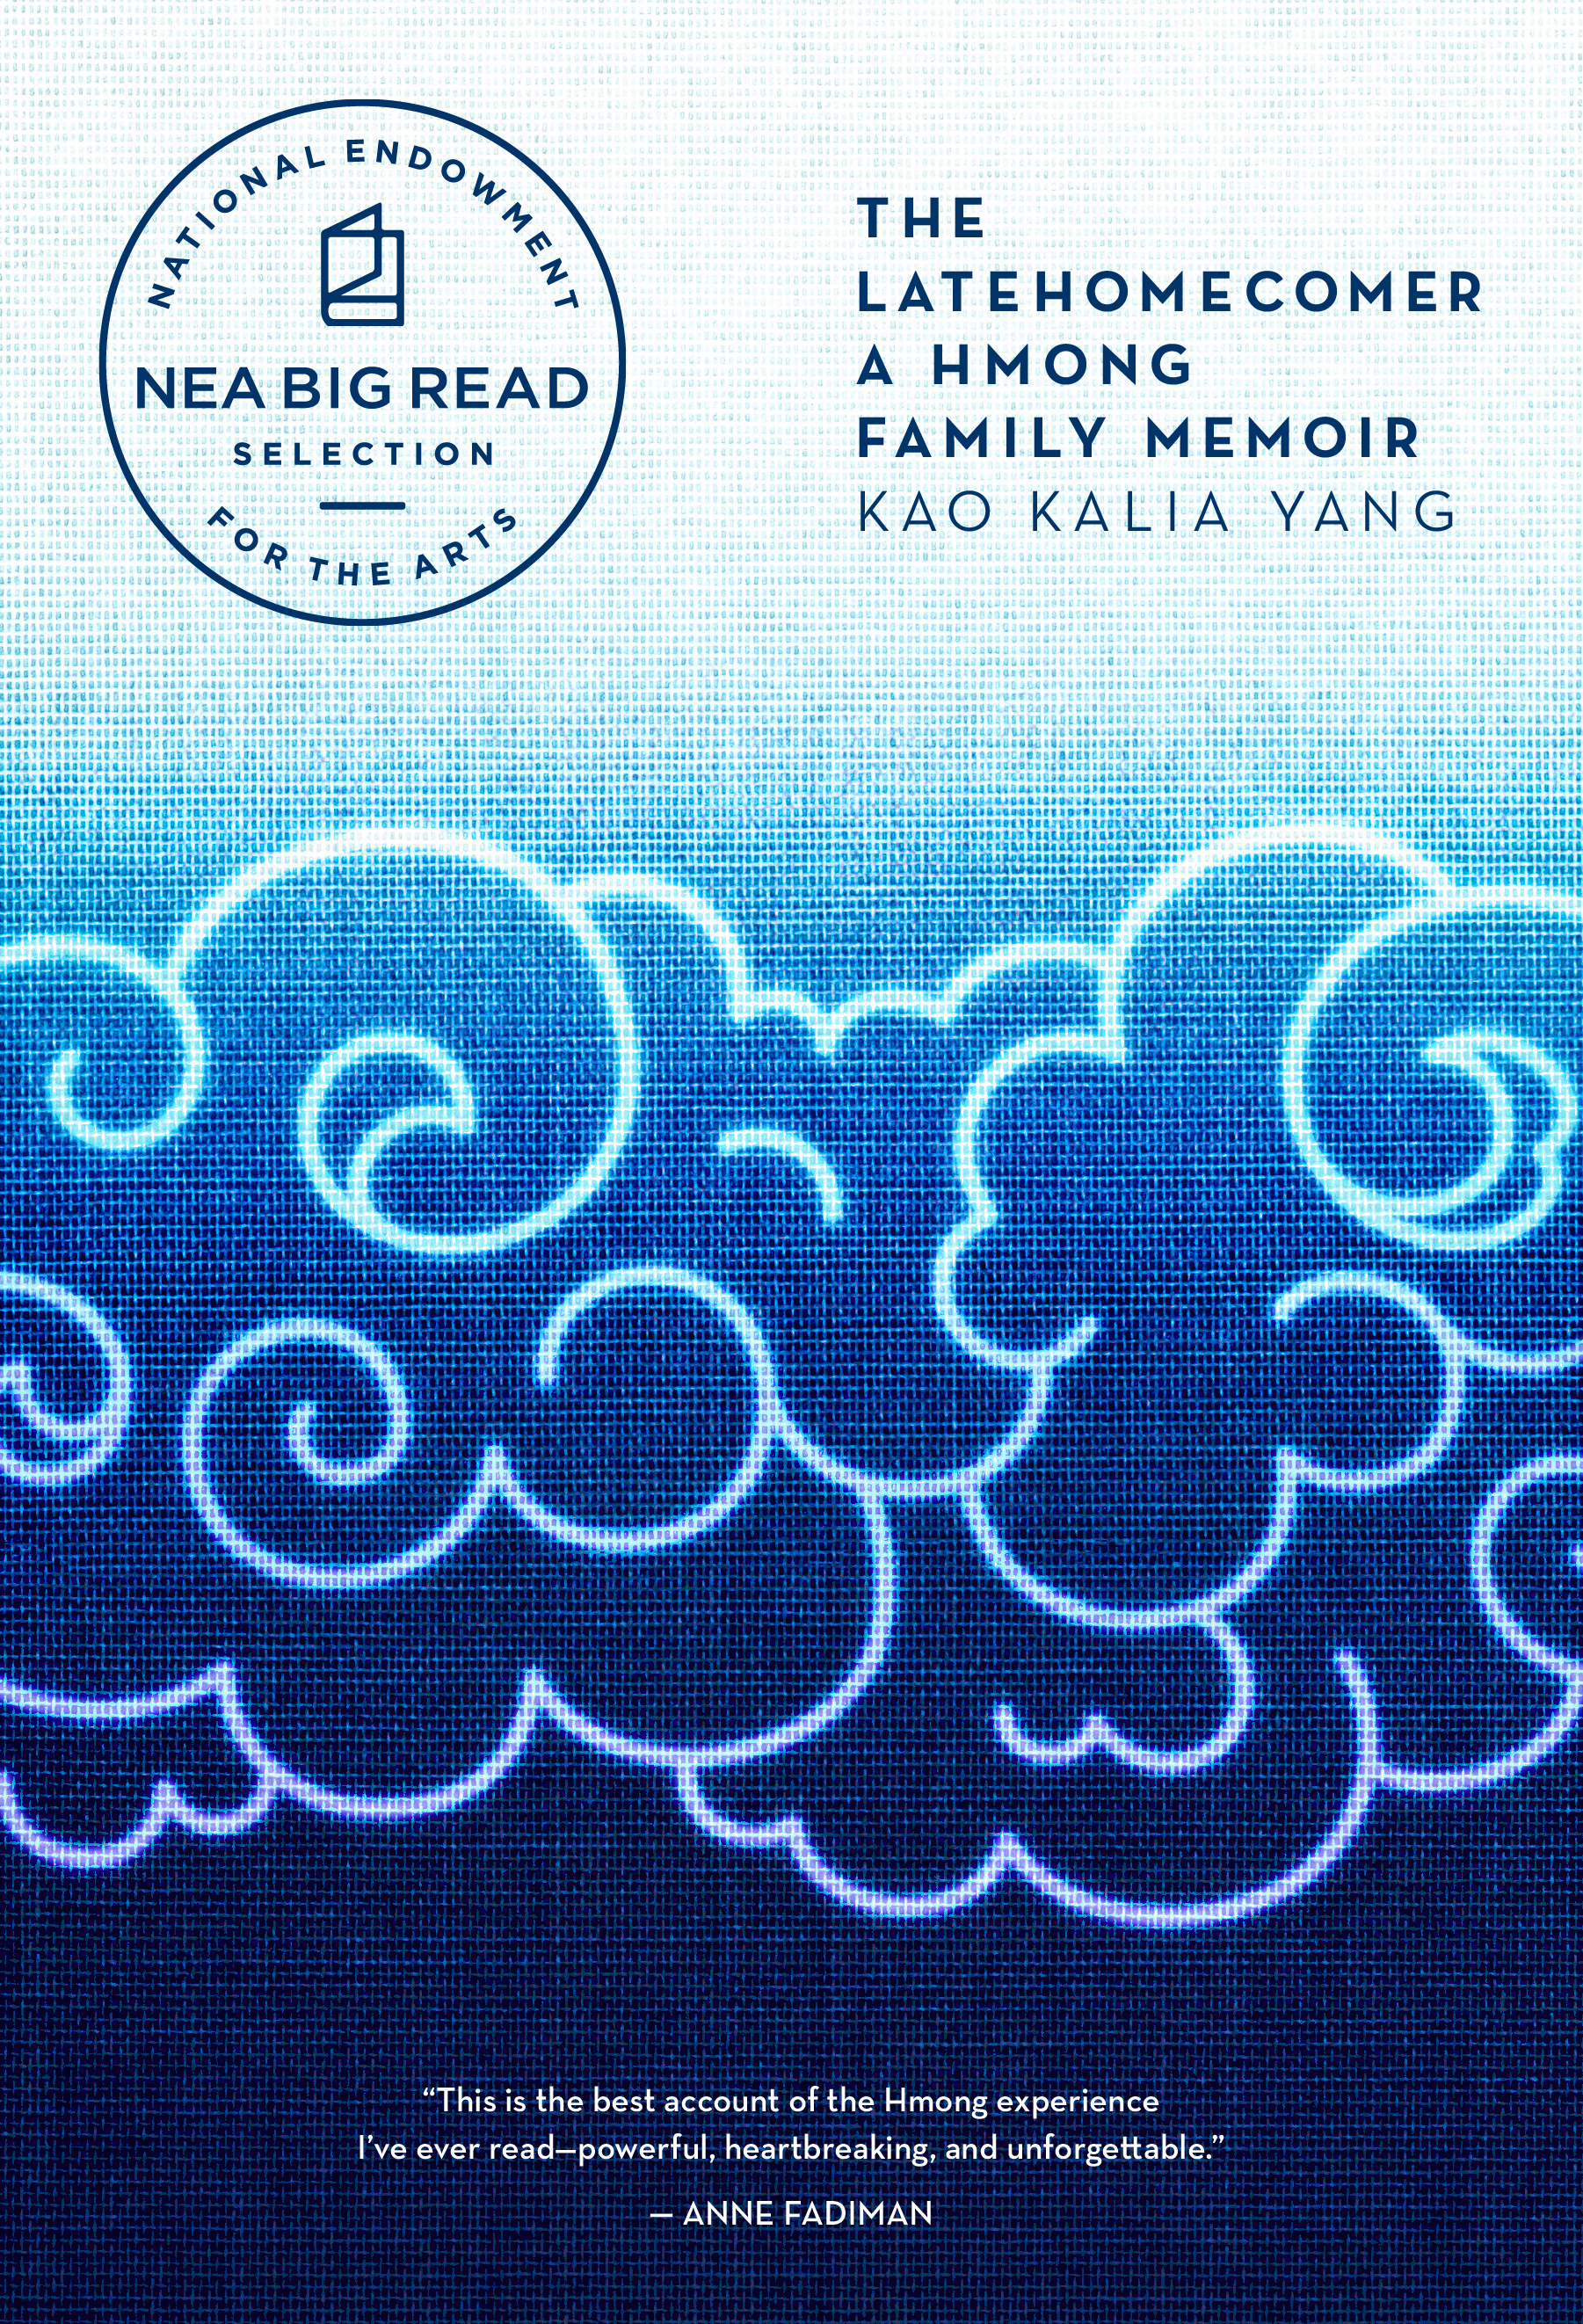 Book cover: author name and book title in the upper right corner against a blue background with calligraphy style clouds